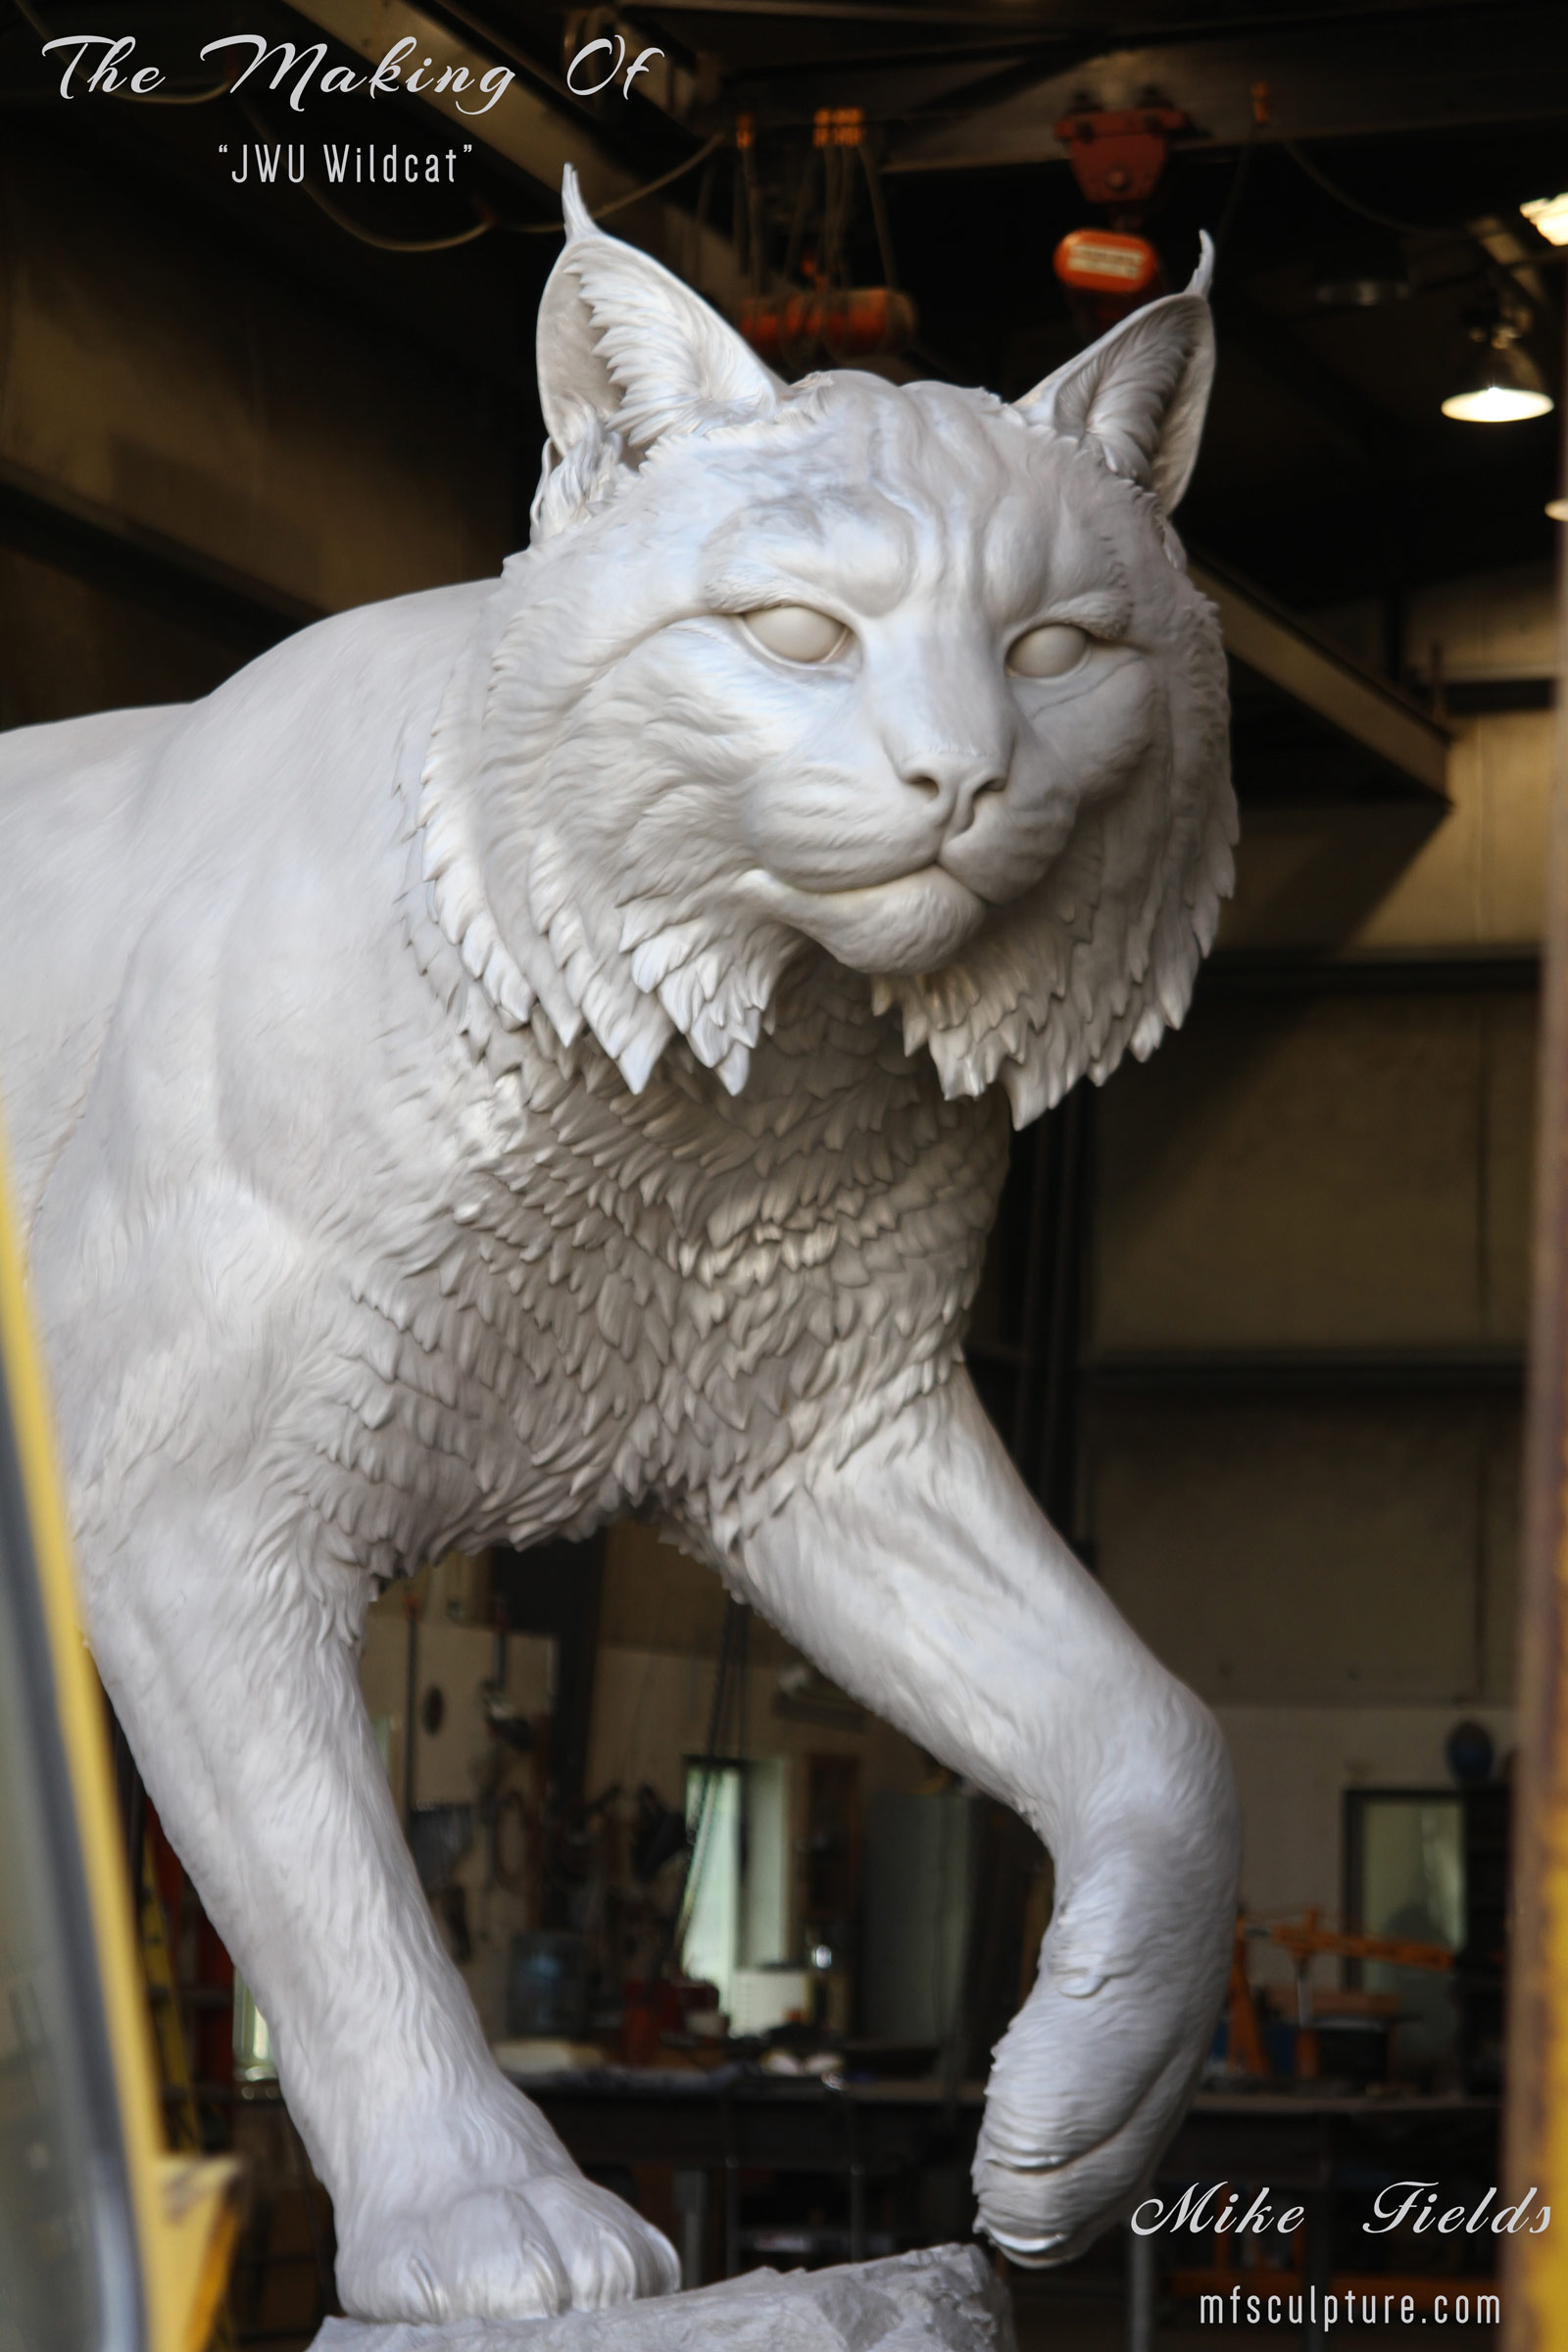 Mike-Fields-Making-Of-JWU-Wildcat